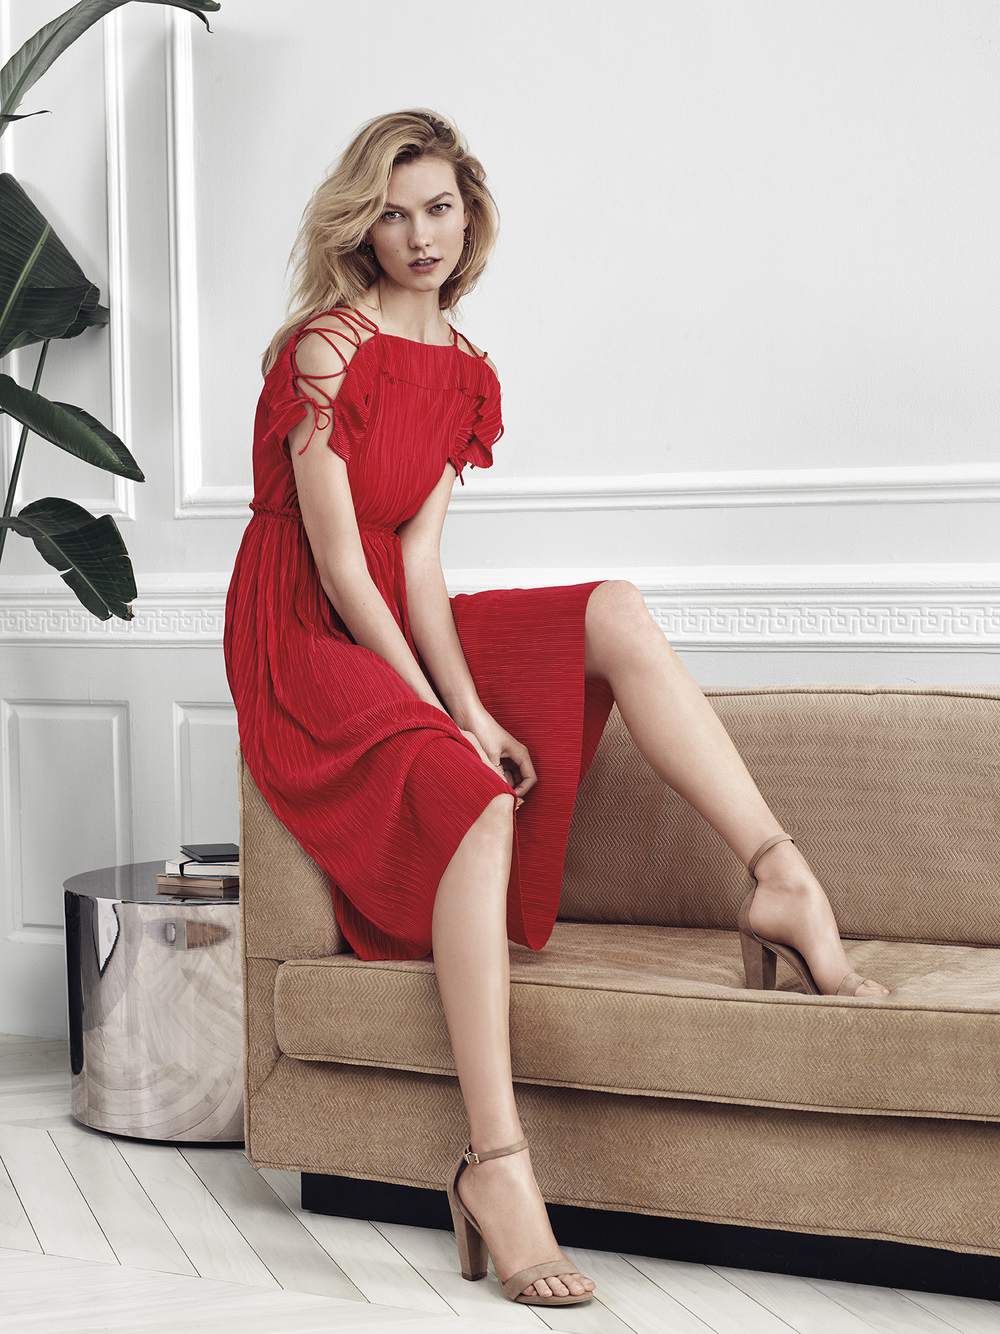 Karlie_Red Dress_Express_1.19.17.png